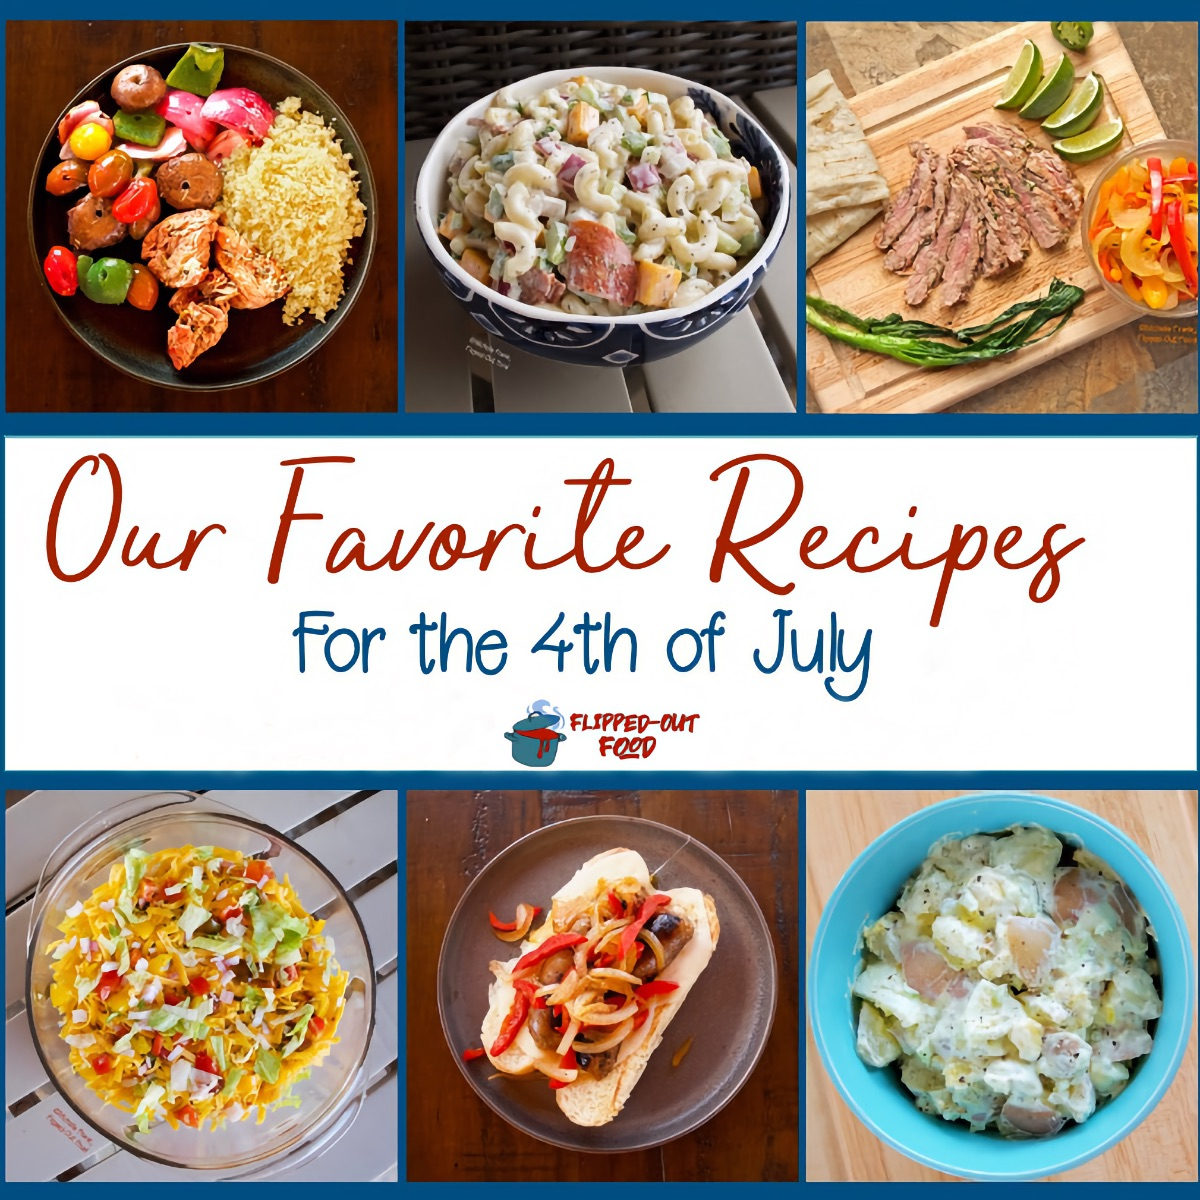 Favorite Fourth of July Recipes collage, showing (clockwise from top left): Creamy Pasta Salad, Italian Sausage Sandwiches with Pepper-Onion Foil Packs, Feisty Chile con Queso Dip, and Pico de Gallo.